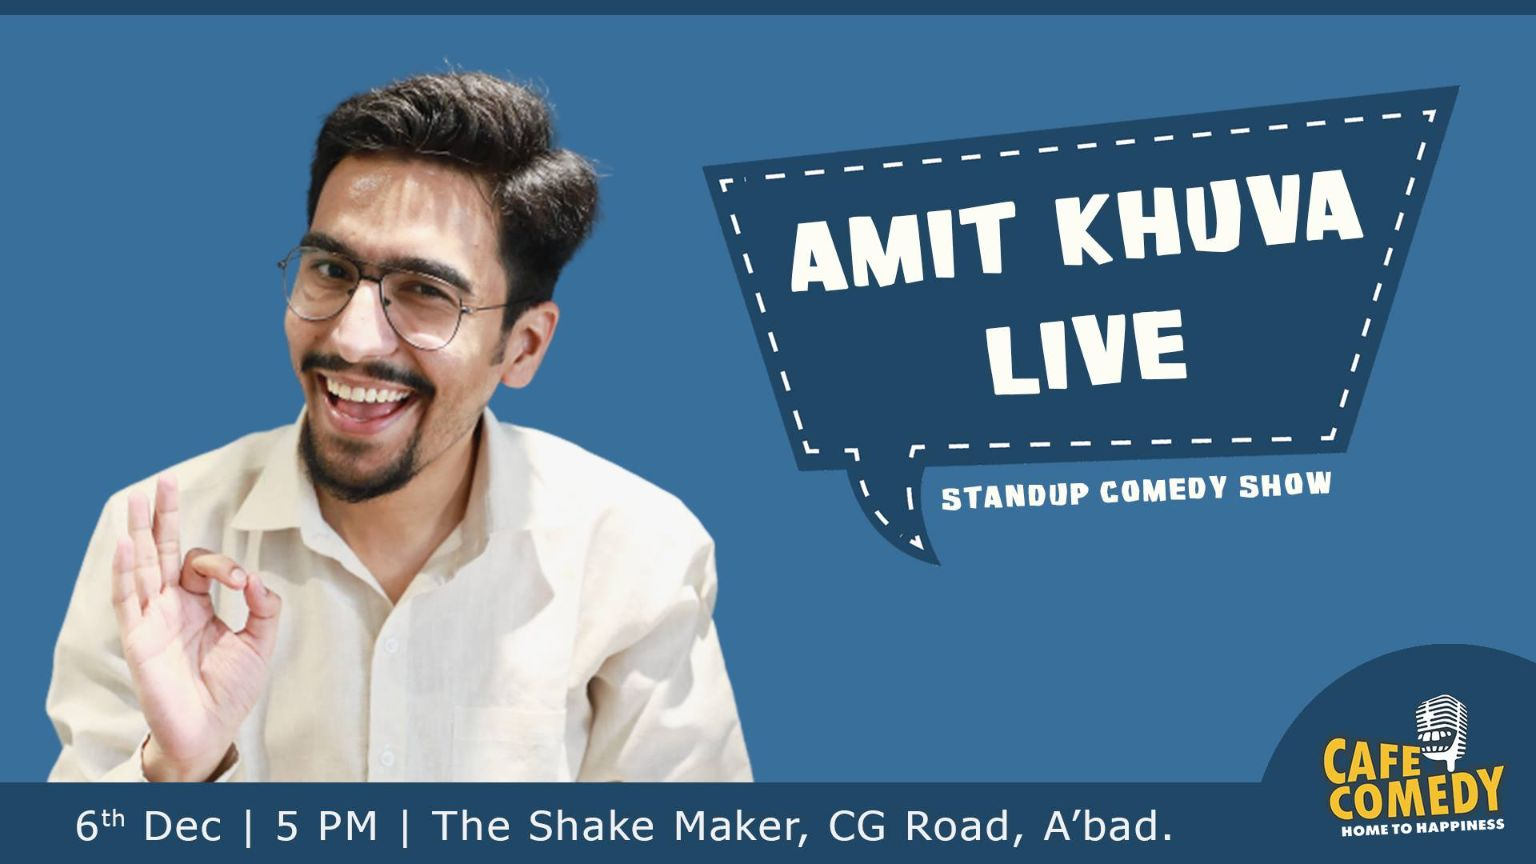 https://creativeyatra.com/wp-content/uploads/2020/12/Amit-Khuva-Live-Standup-Comedy-Show.jpg